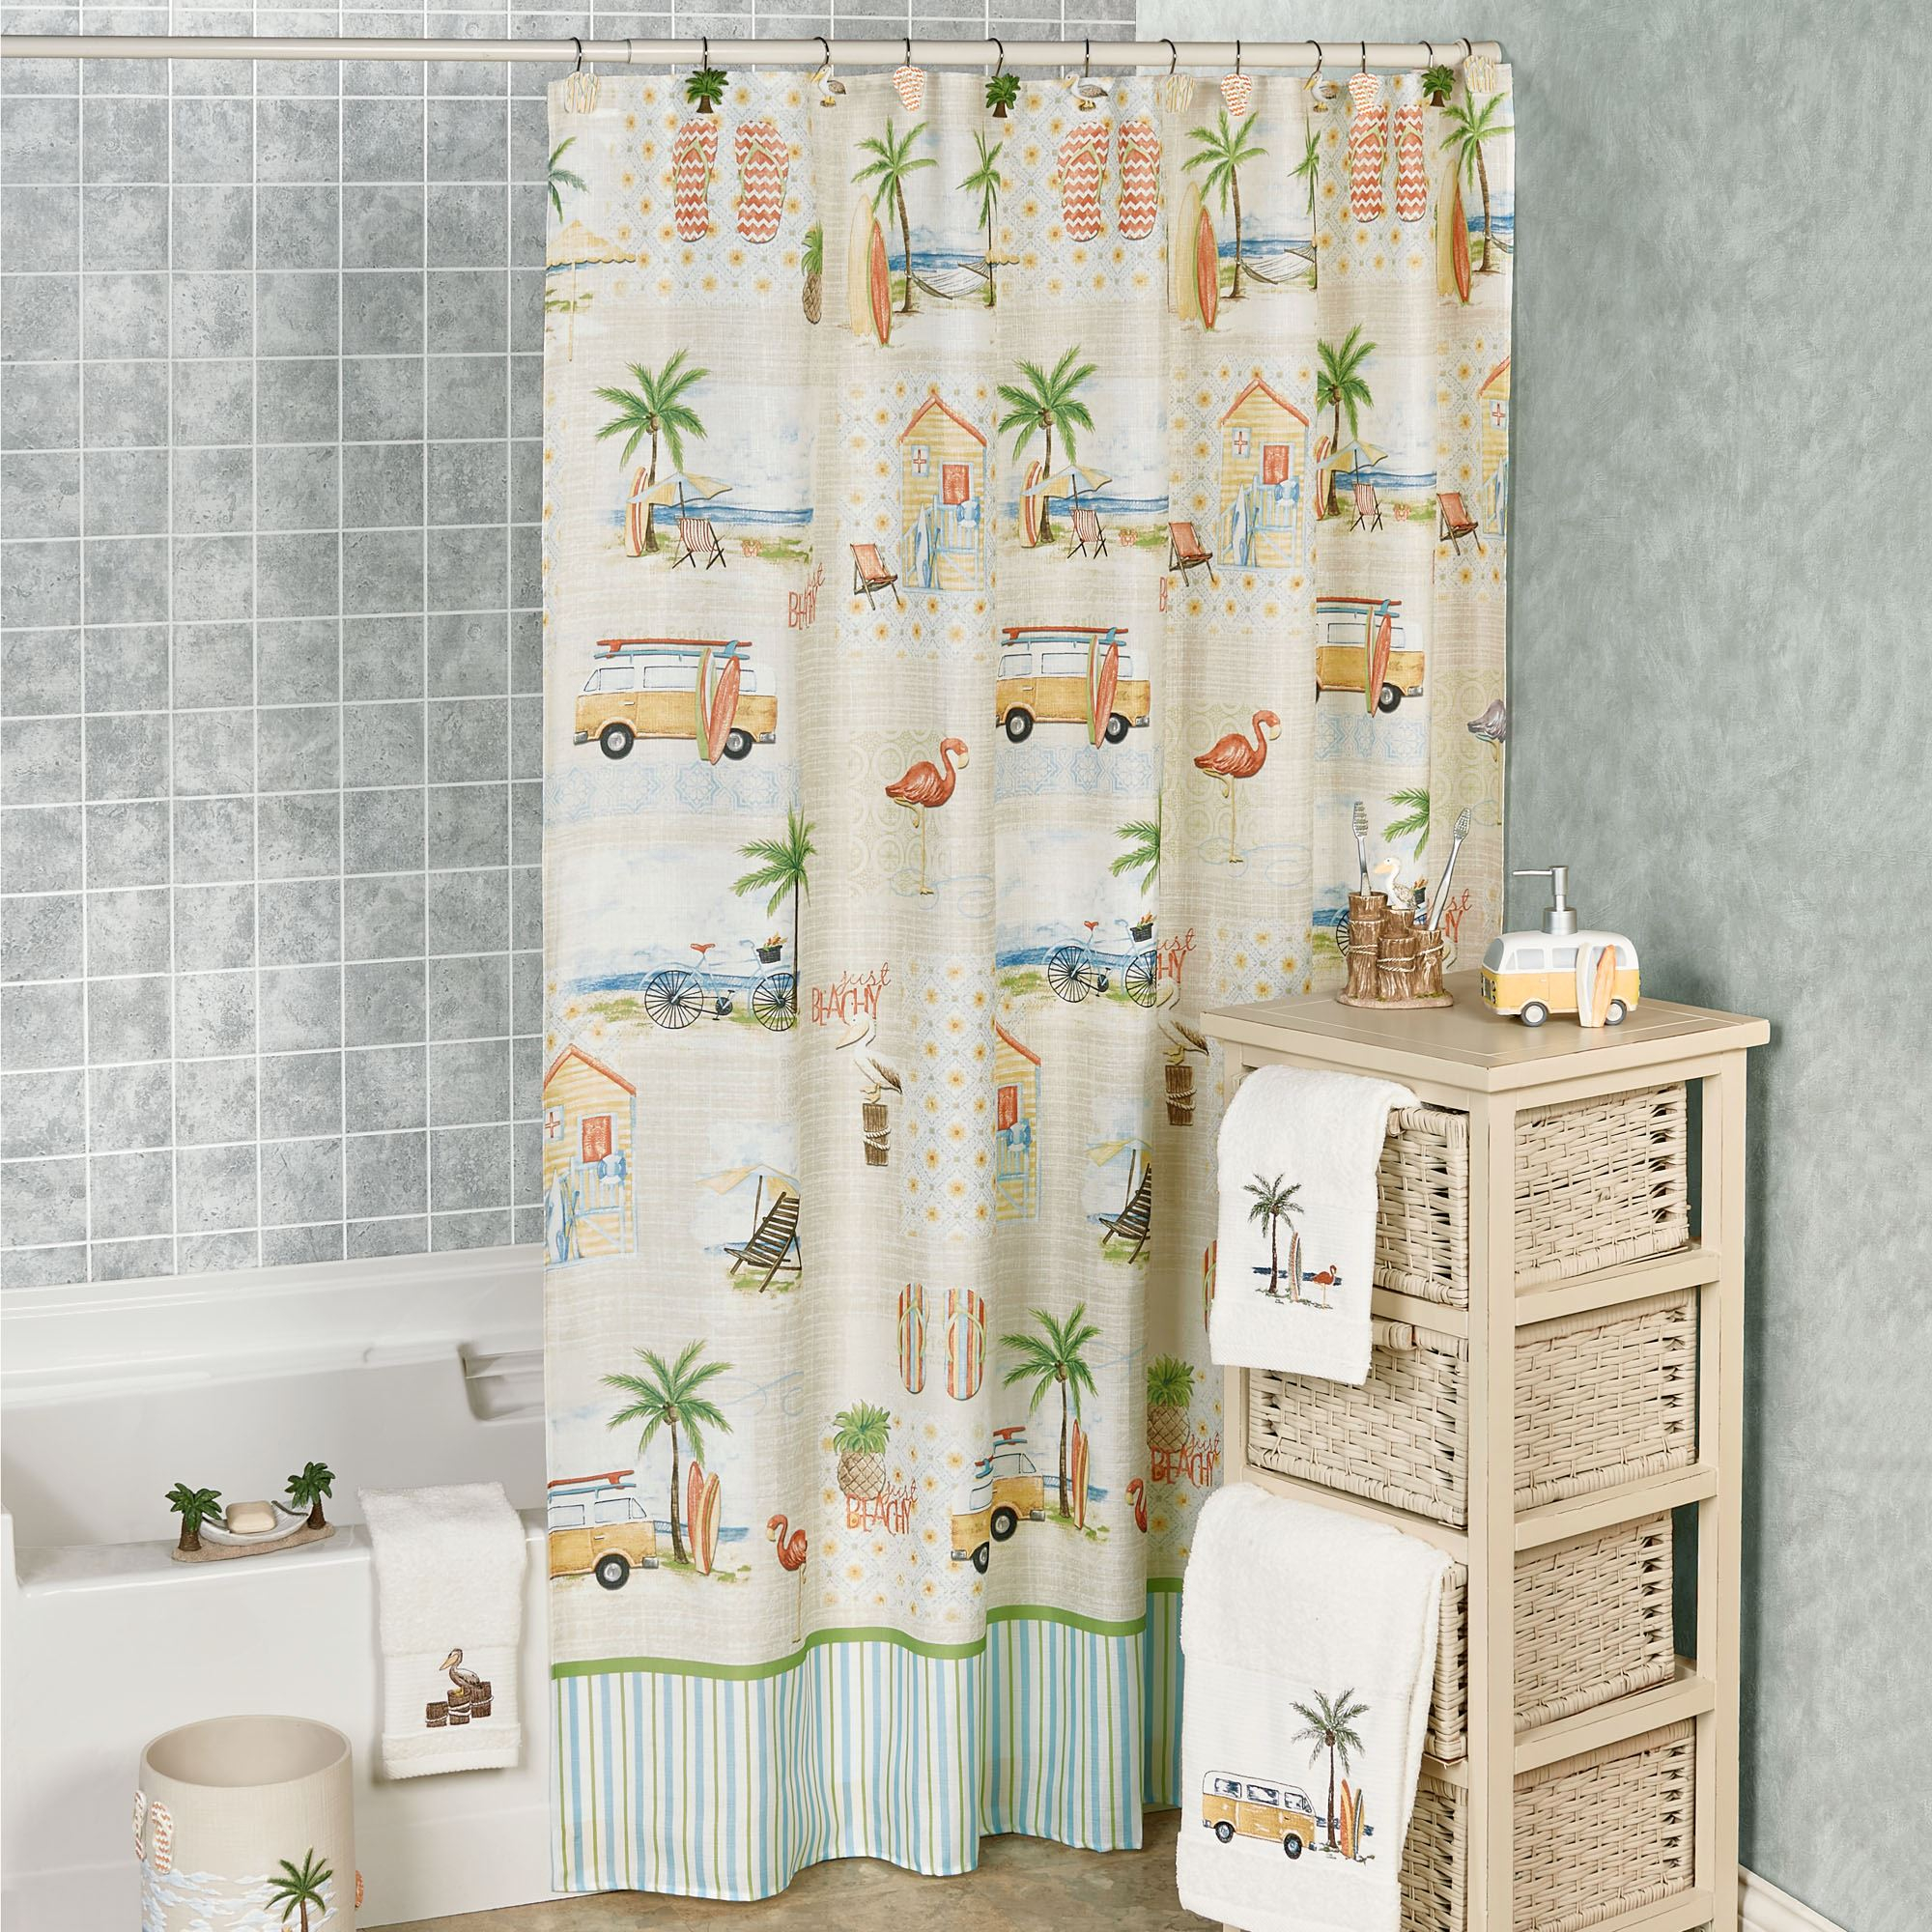 images shower editor awesome interiors themed best beach knowee s of picks on home pinterest luxury curtain curtains